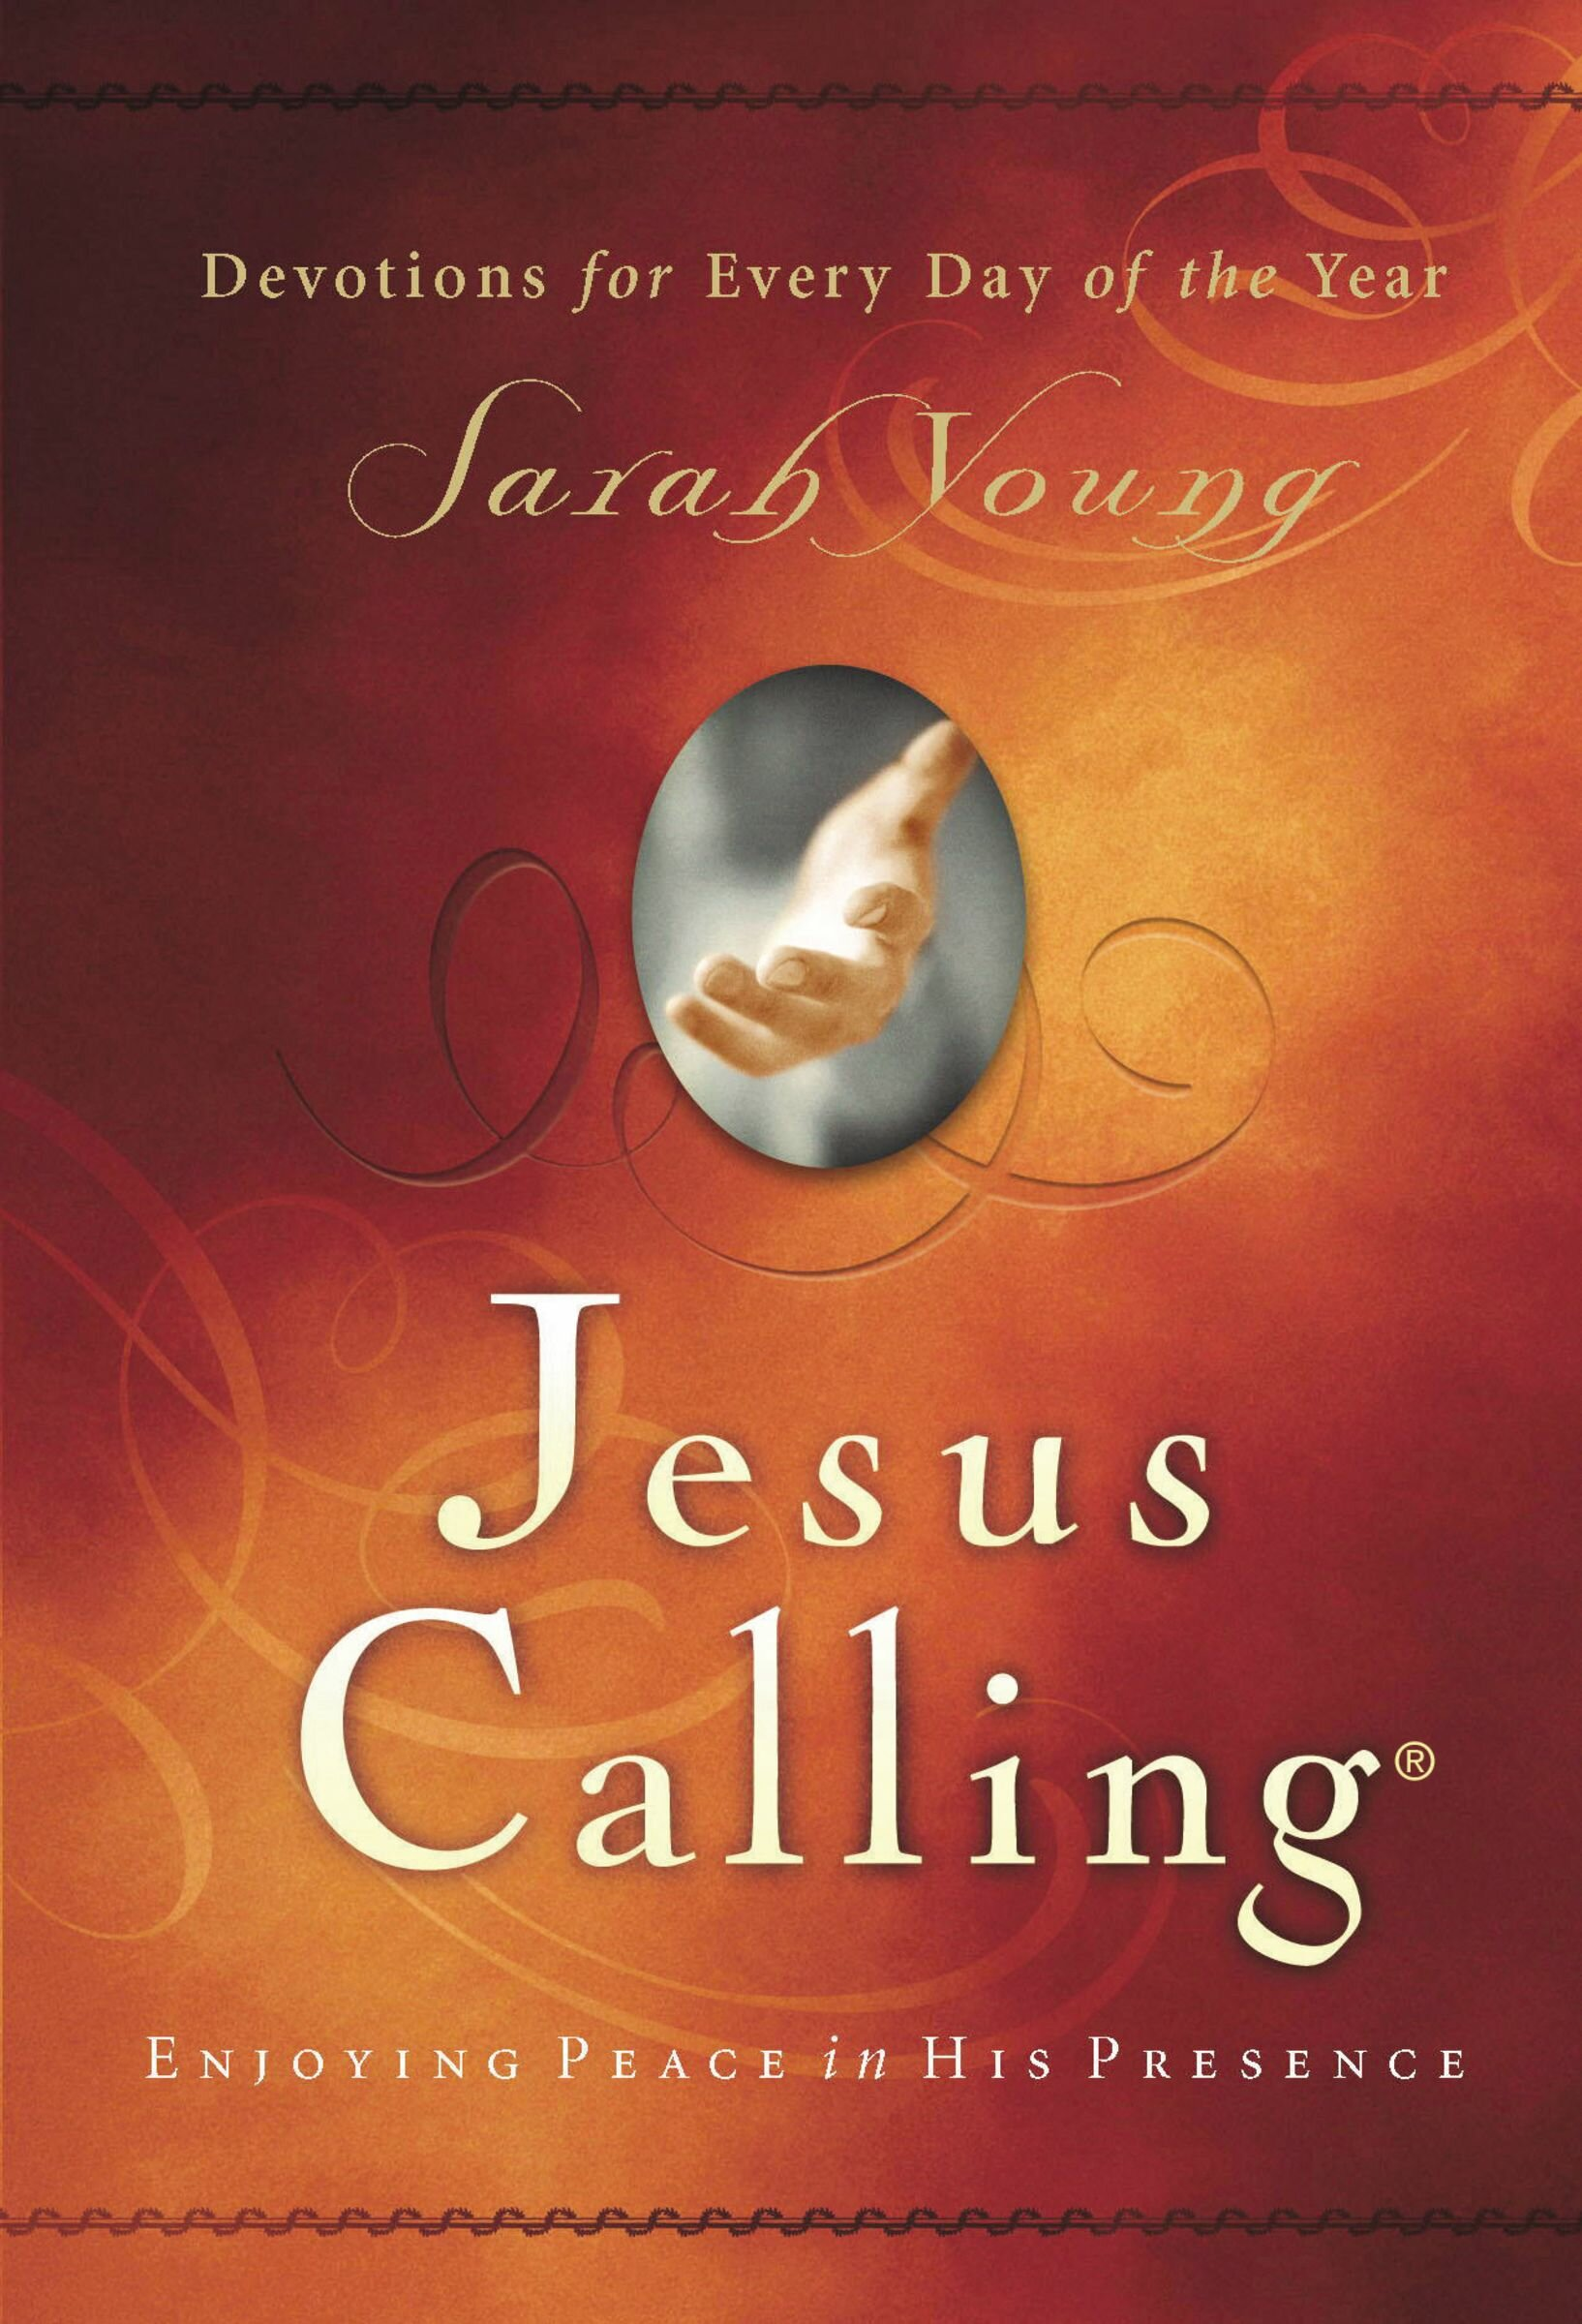 Jesus Calling: Enjoying Peace in His Presence, with Scripture references